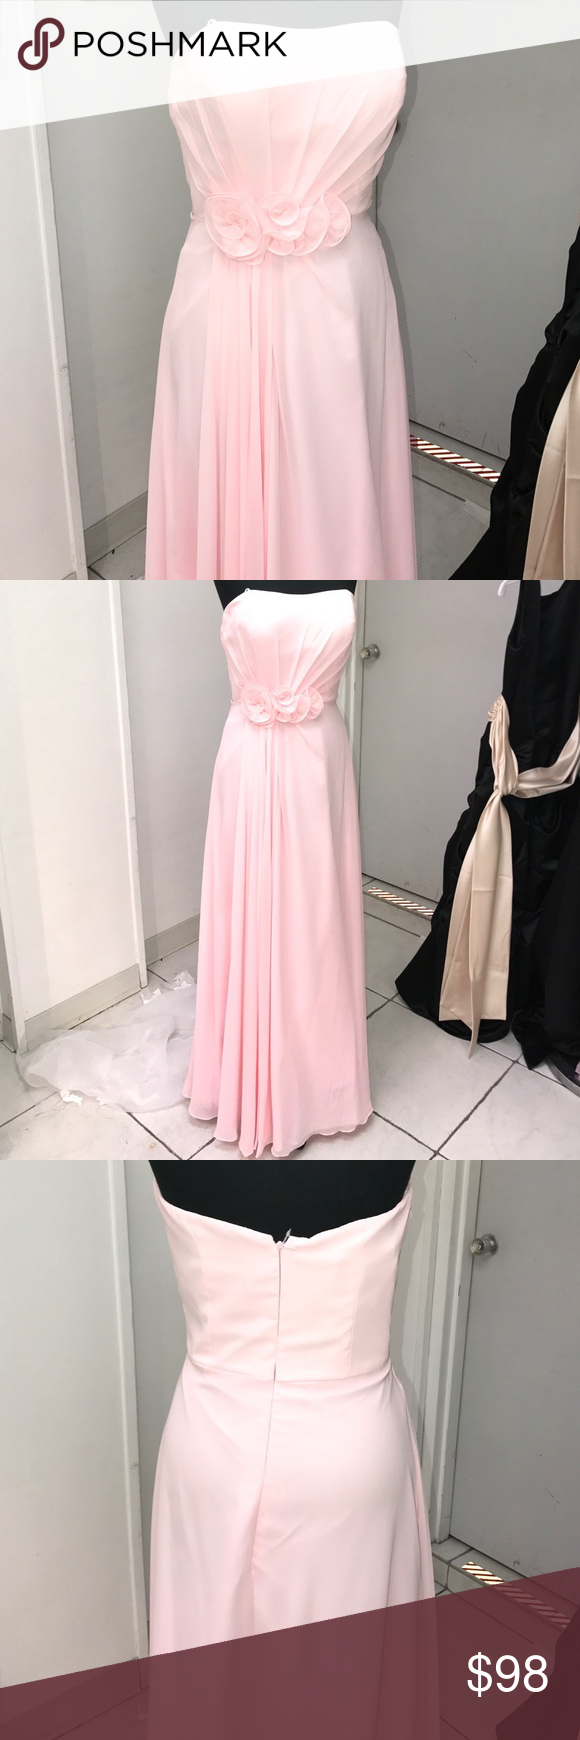 Ice pink gown Strapless side flower embellishment, draped Chiffon Dresses Strapless